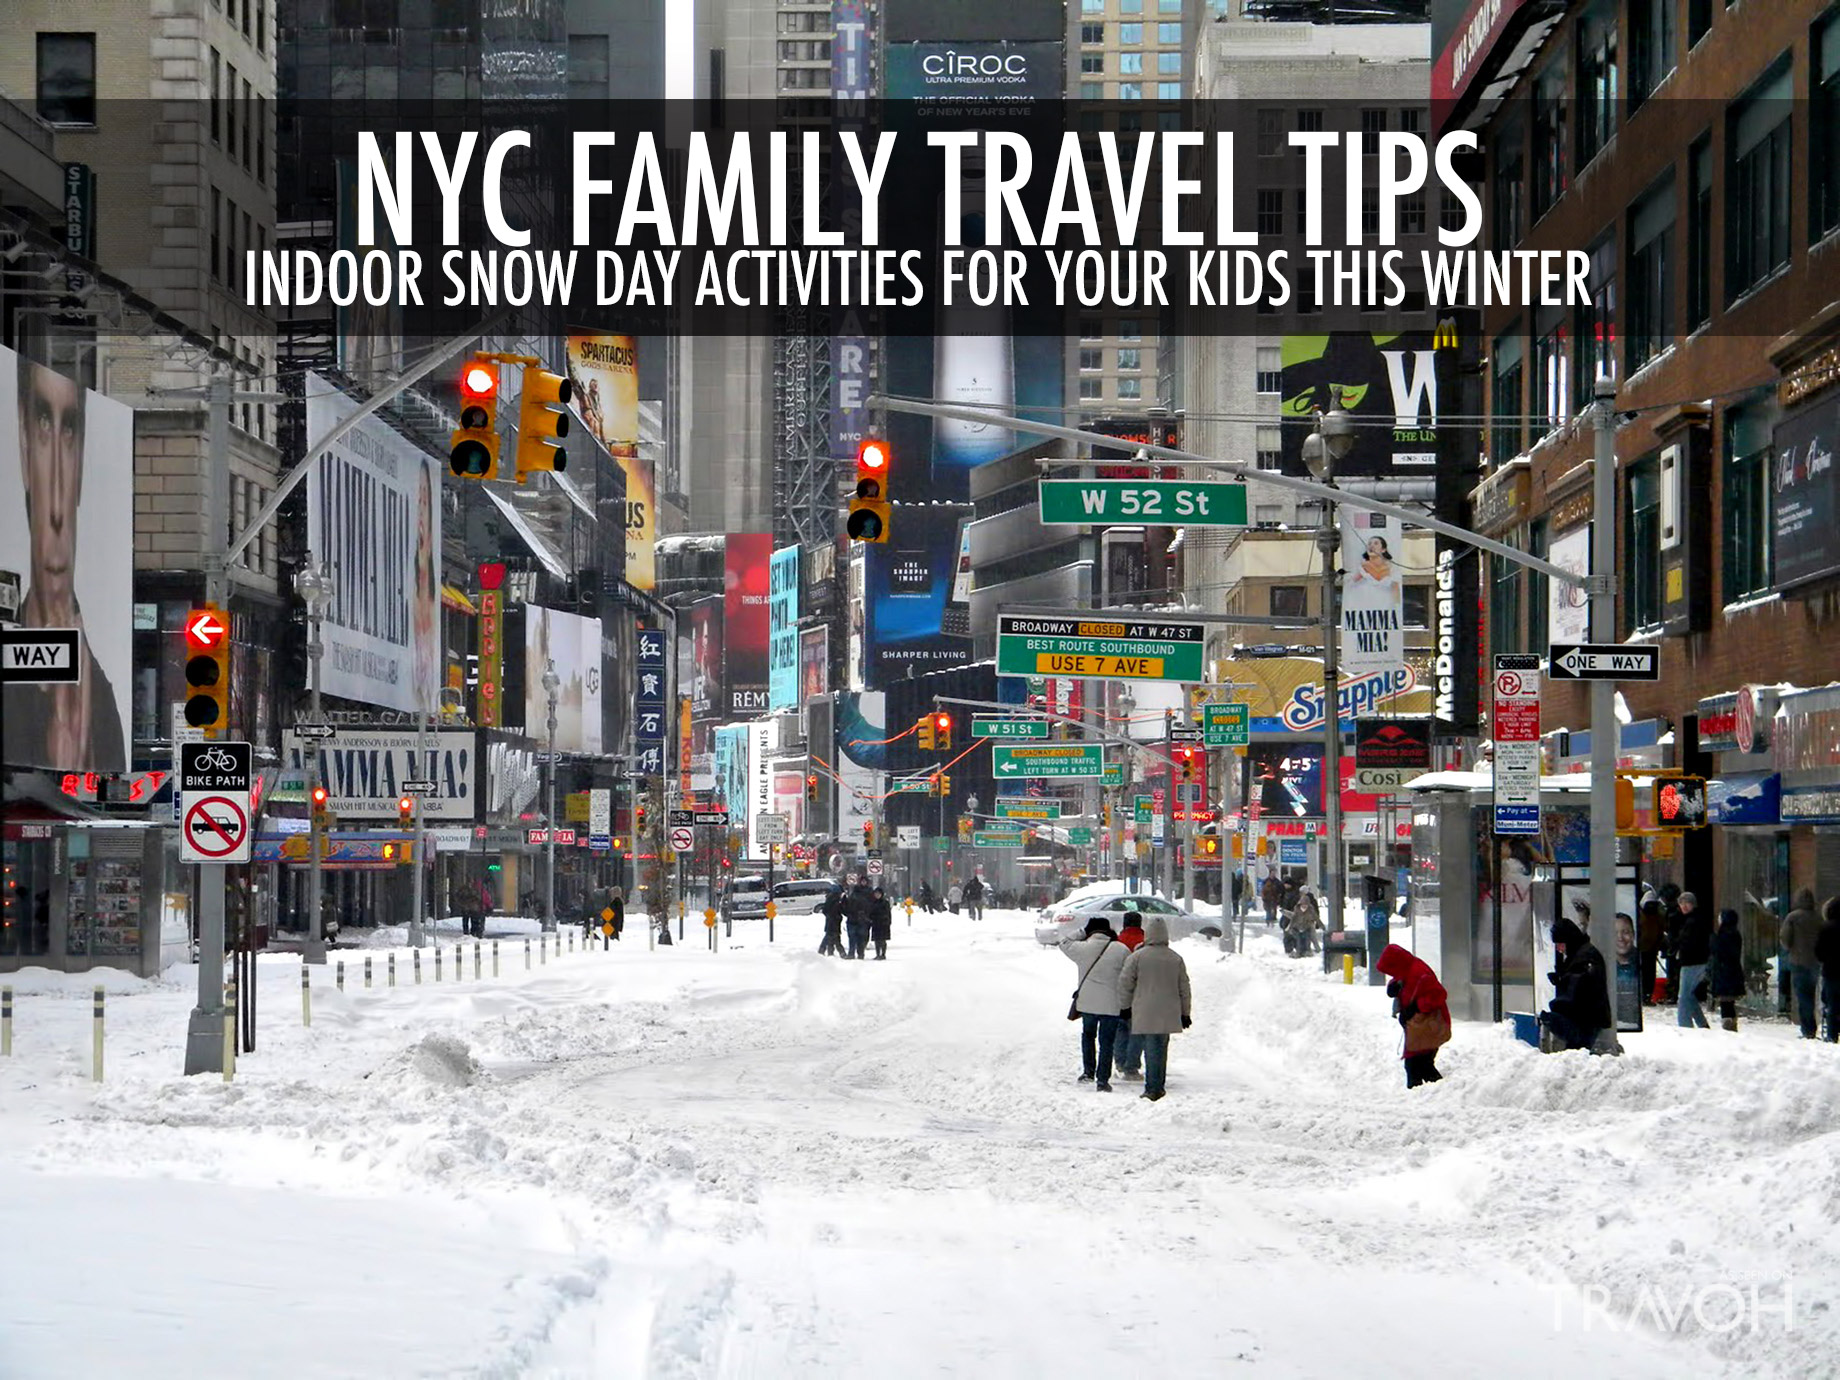 NYC Family Travel Tips - Indoor Snow Day Activities for Your Kids This Winter